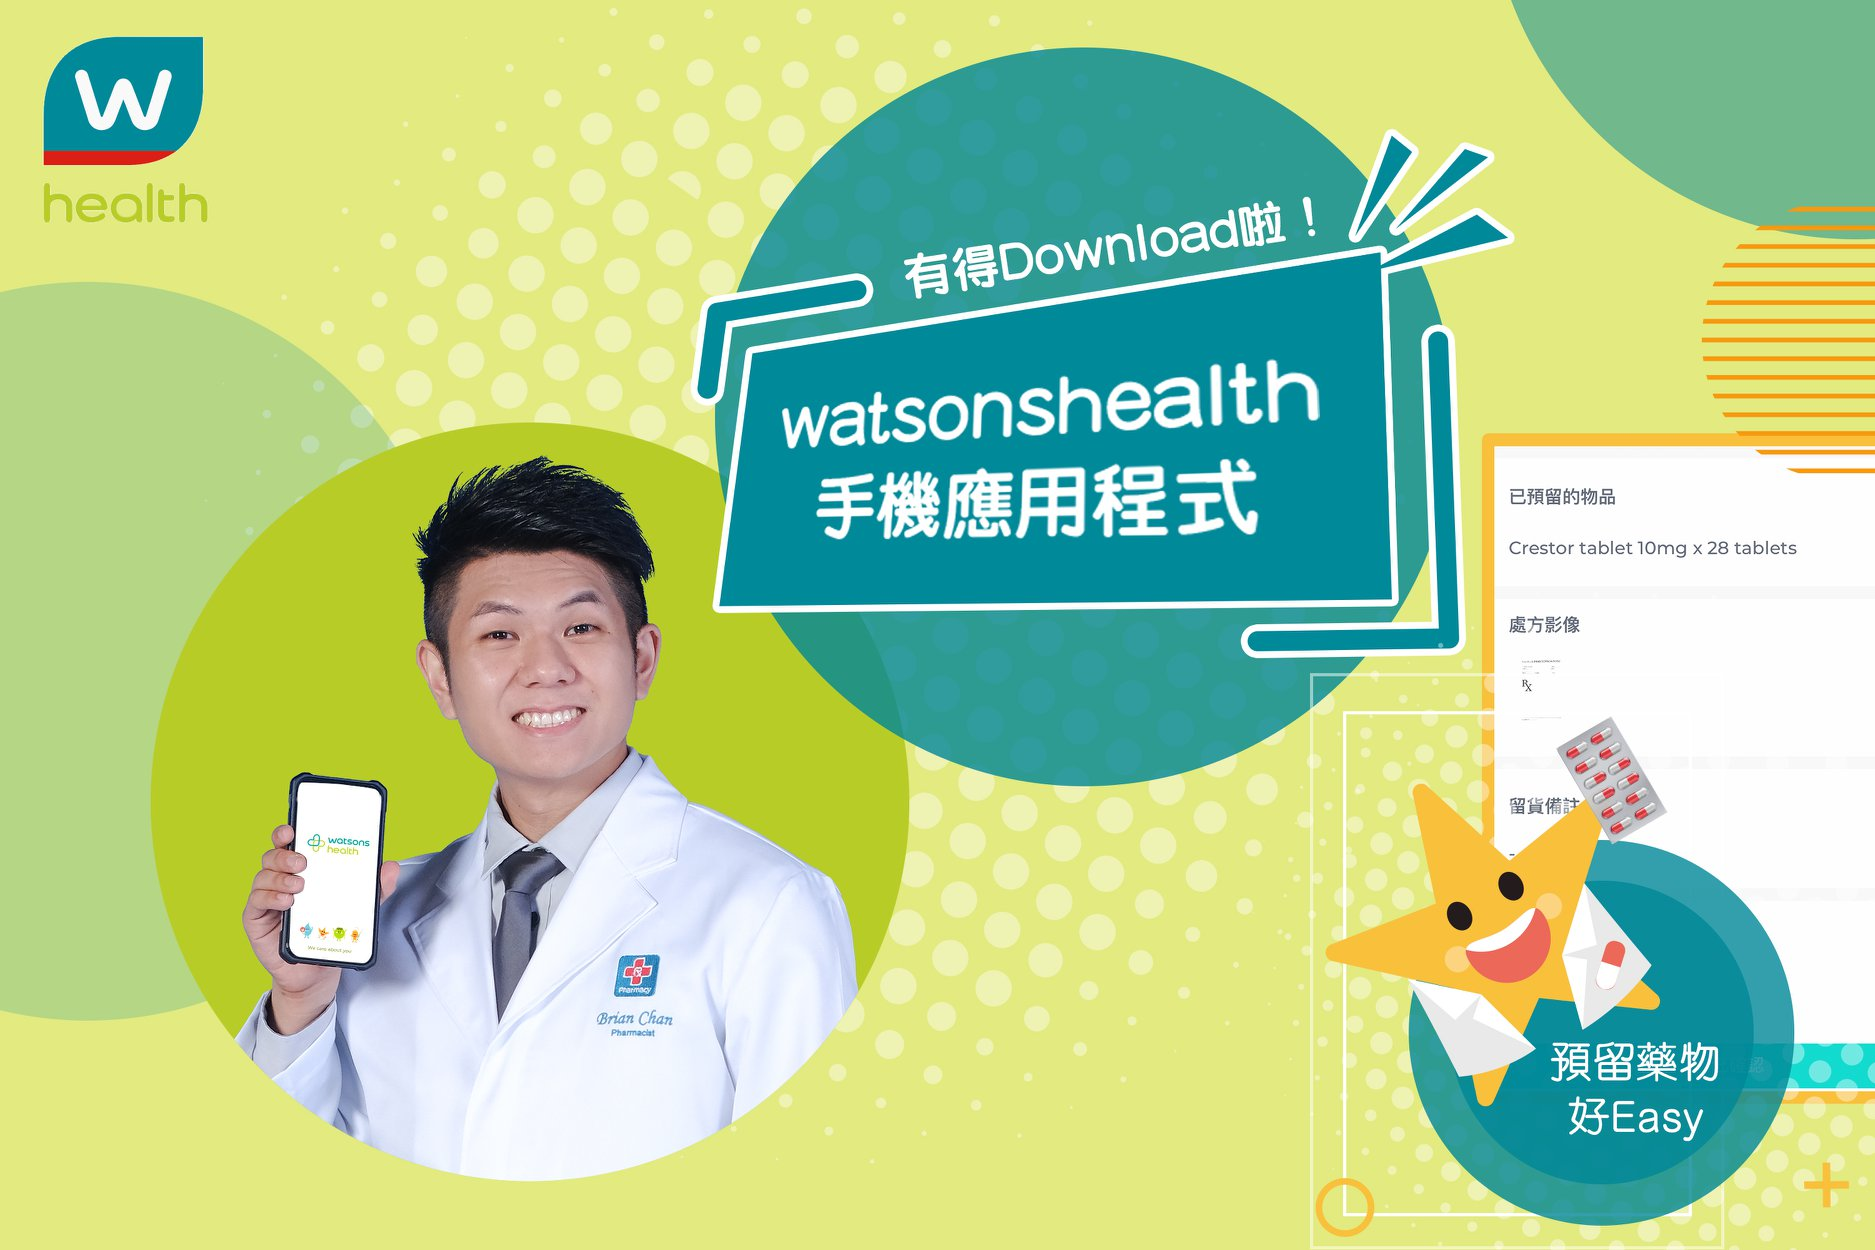 【watsonshealth你嘅健康守護APP❤ We Care About Your Health】